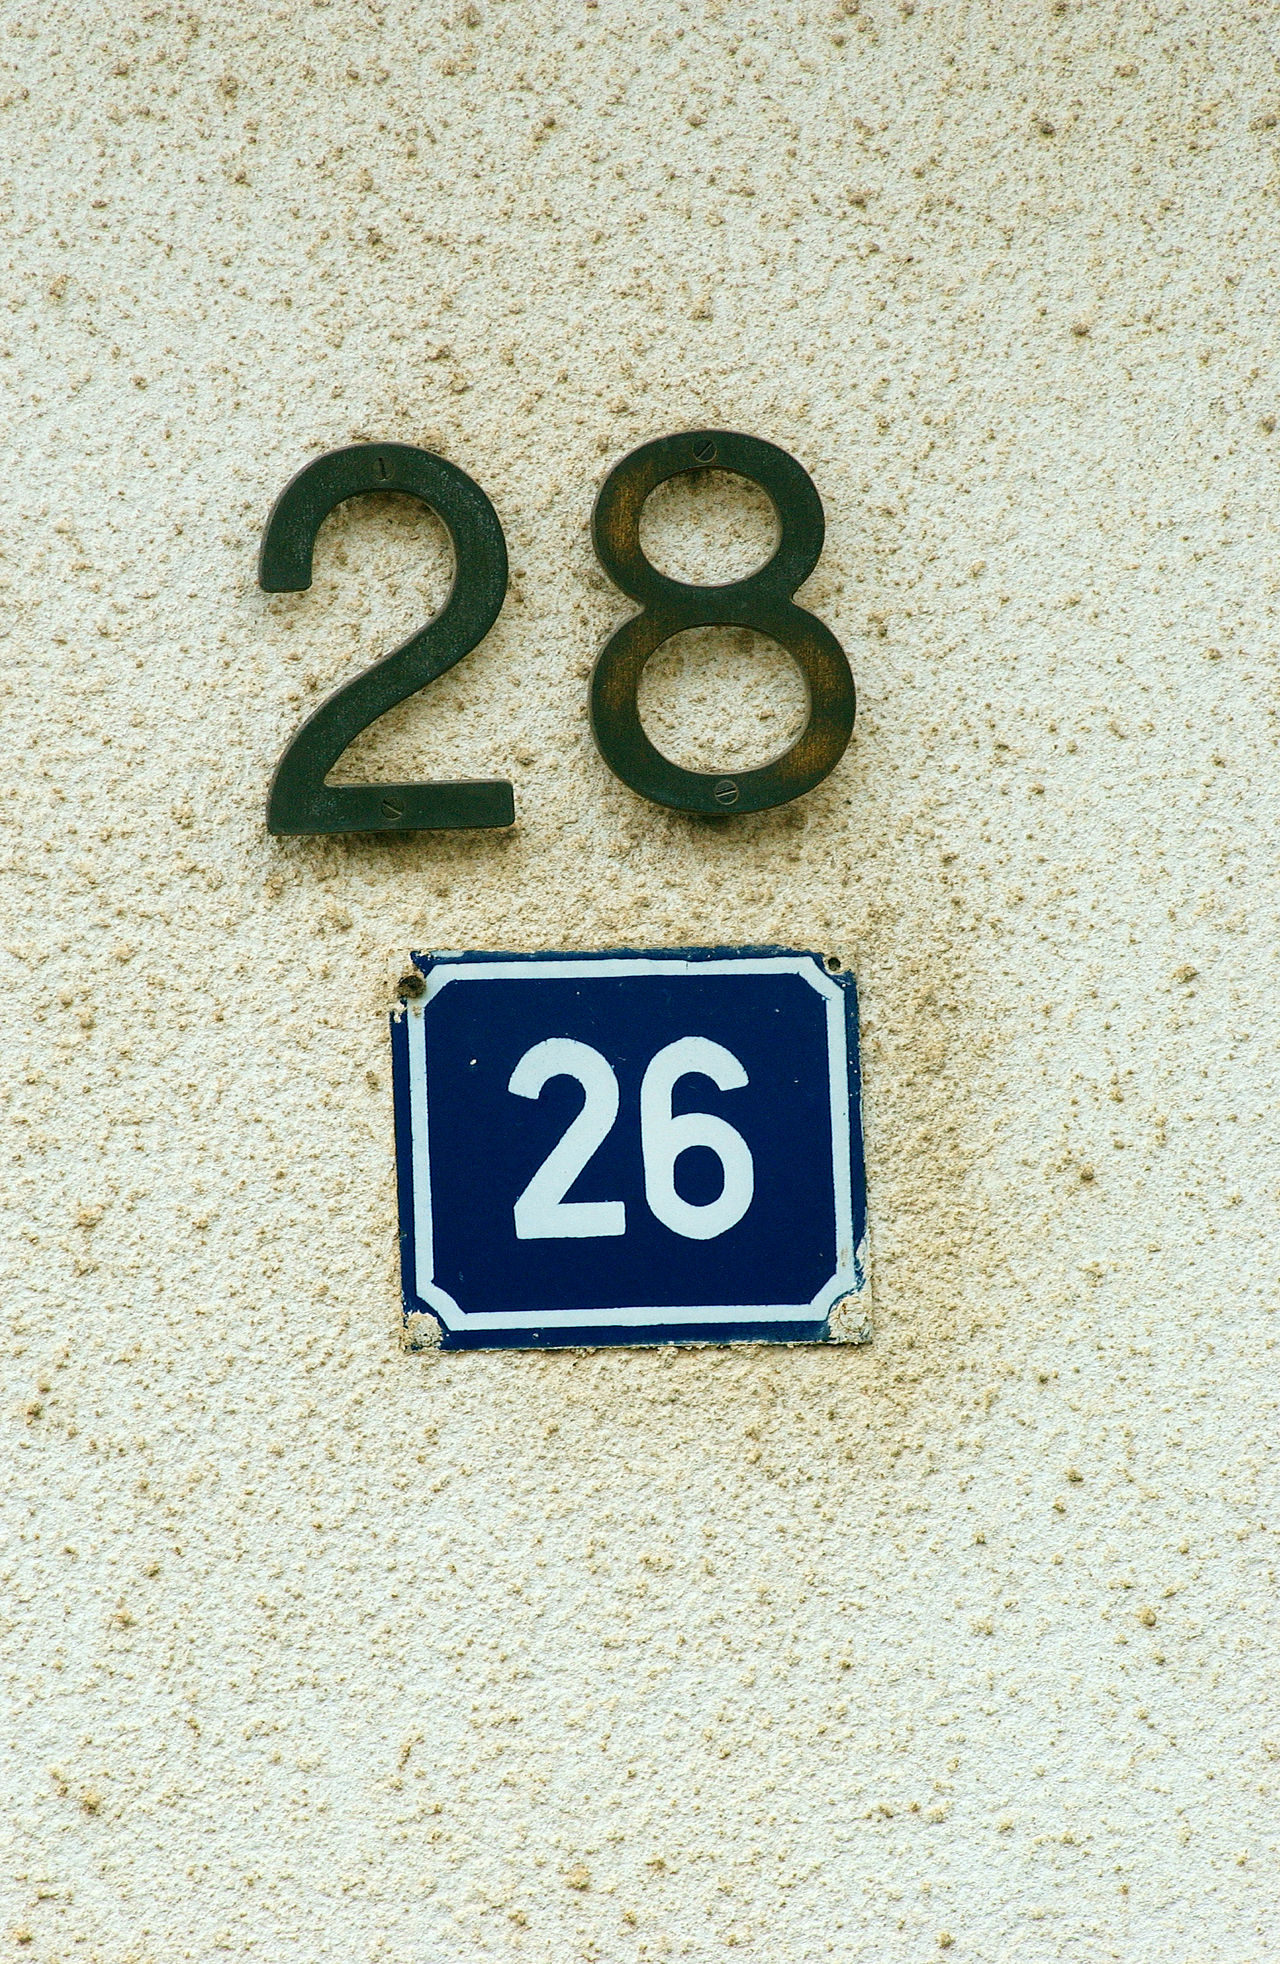 numbers 26 28 30 Close-up Day Door Number House Number House Number On Wall No People Number Plate Outdoors Plate